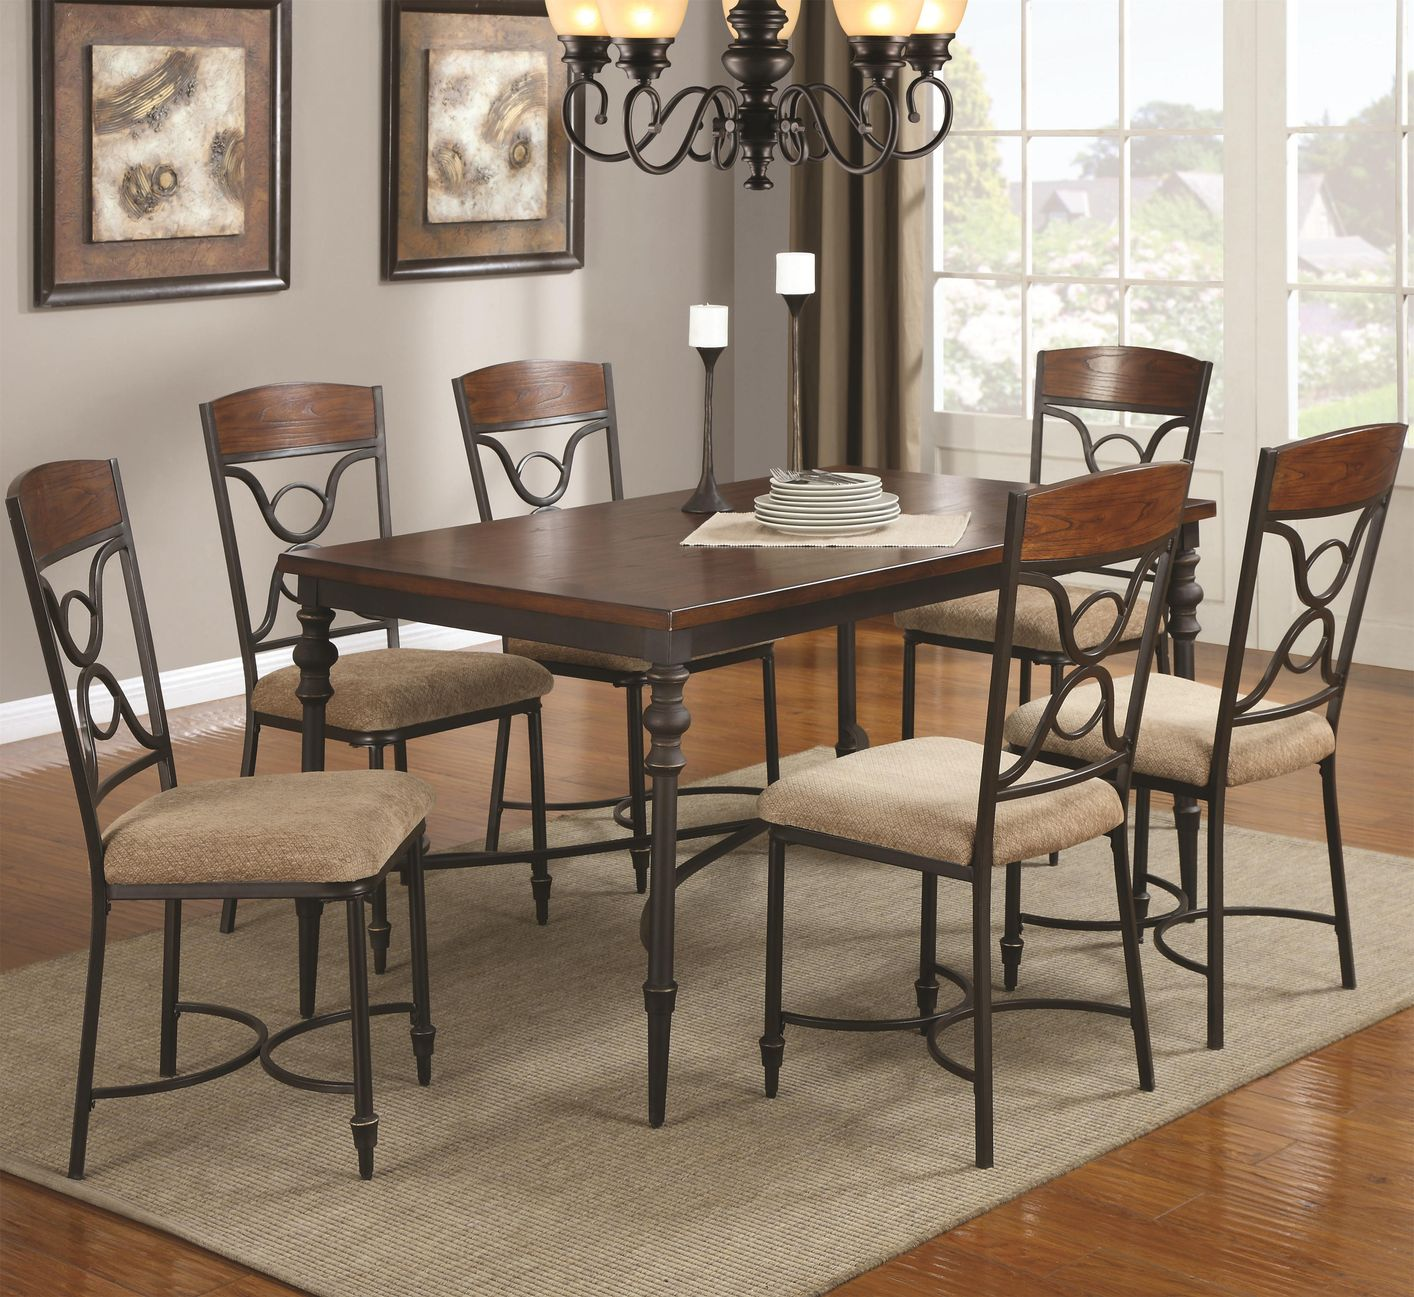 metal dining room sets | Klaus Cherry Metal And Wood Dining Table Set - Steal-A ...